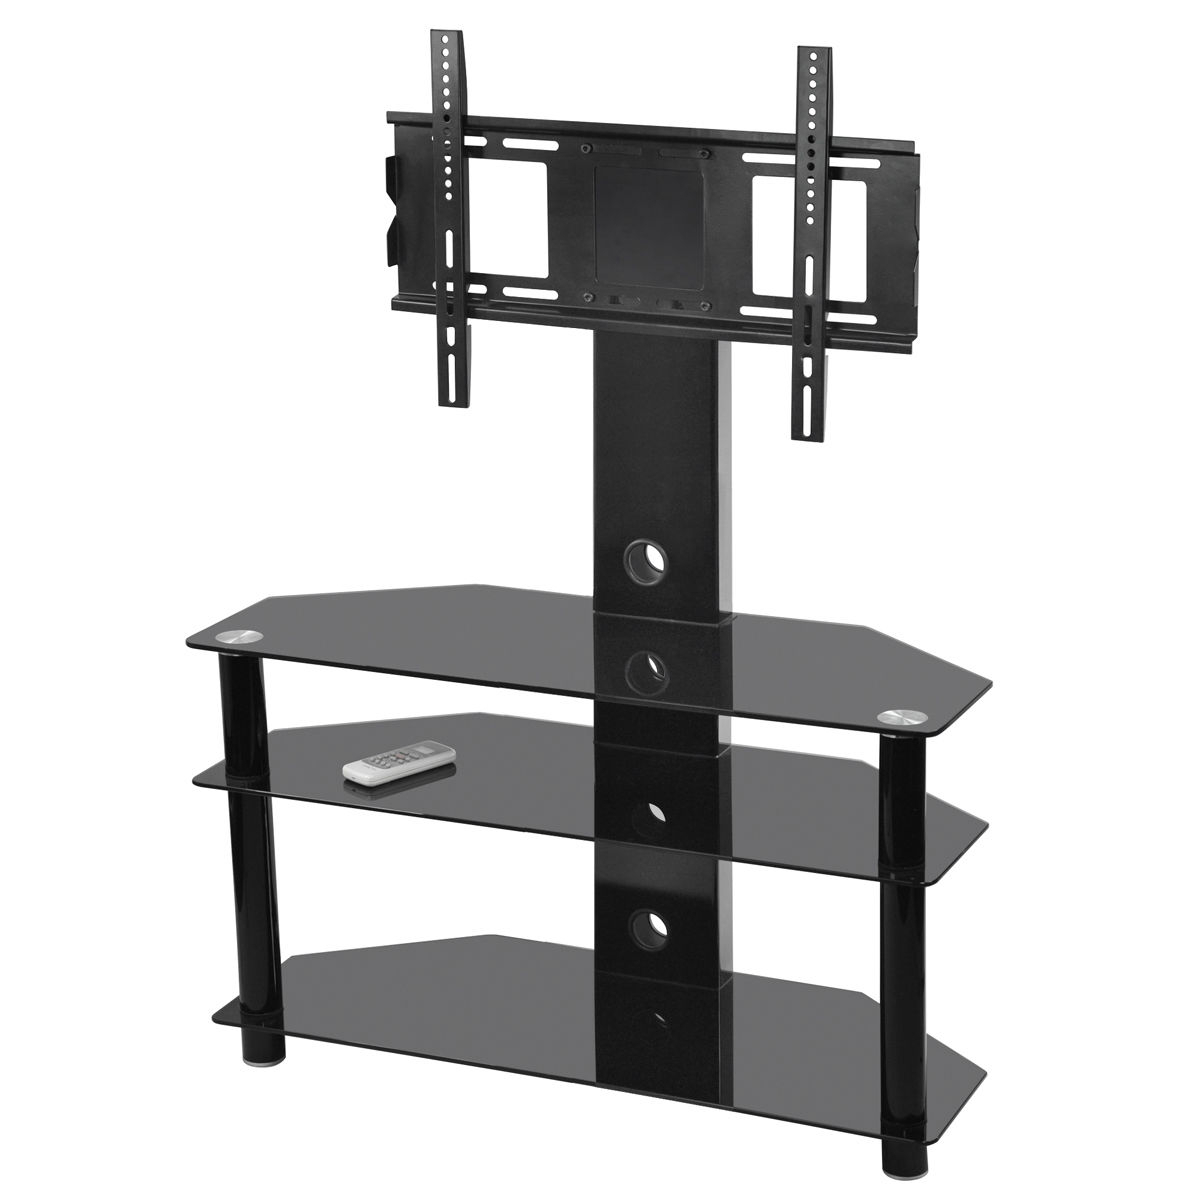 Single Tv Stands Regarding Well Liked Column Tv Stand Roman With Mount Single Stands – Buyouapp (Gallery 8 of 20)